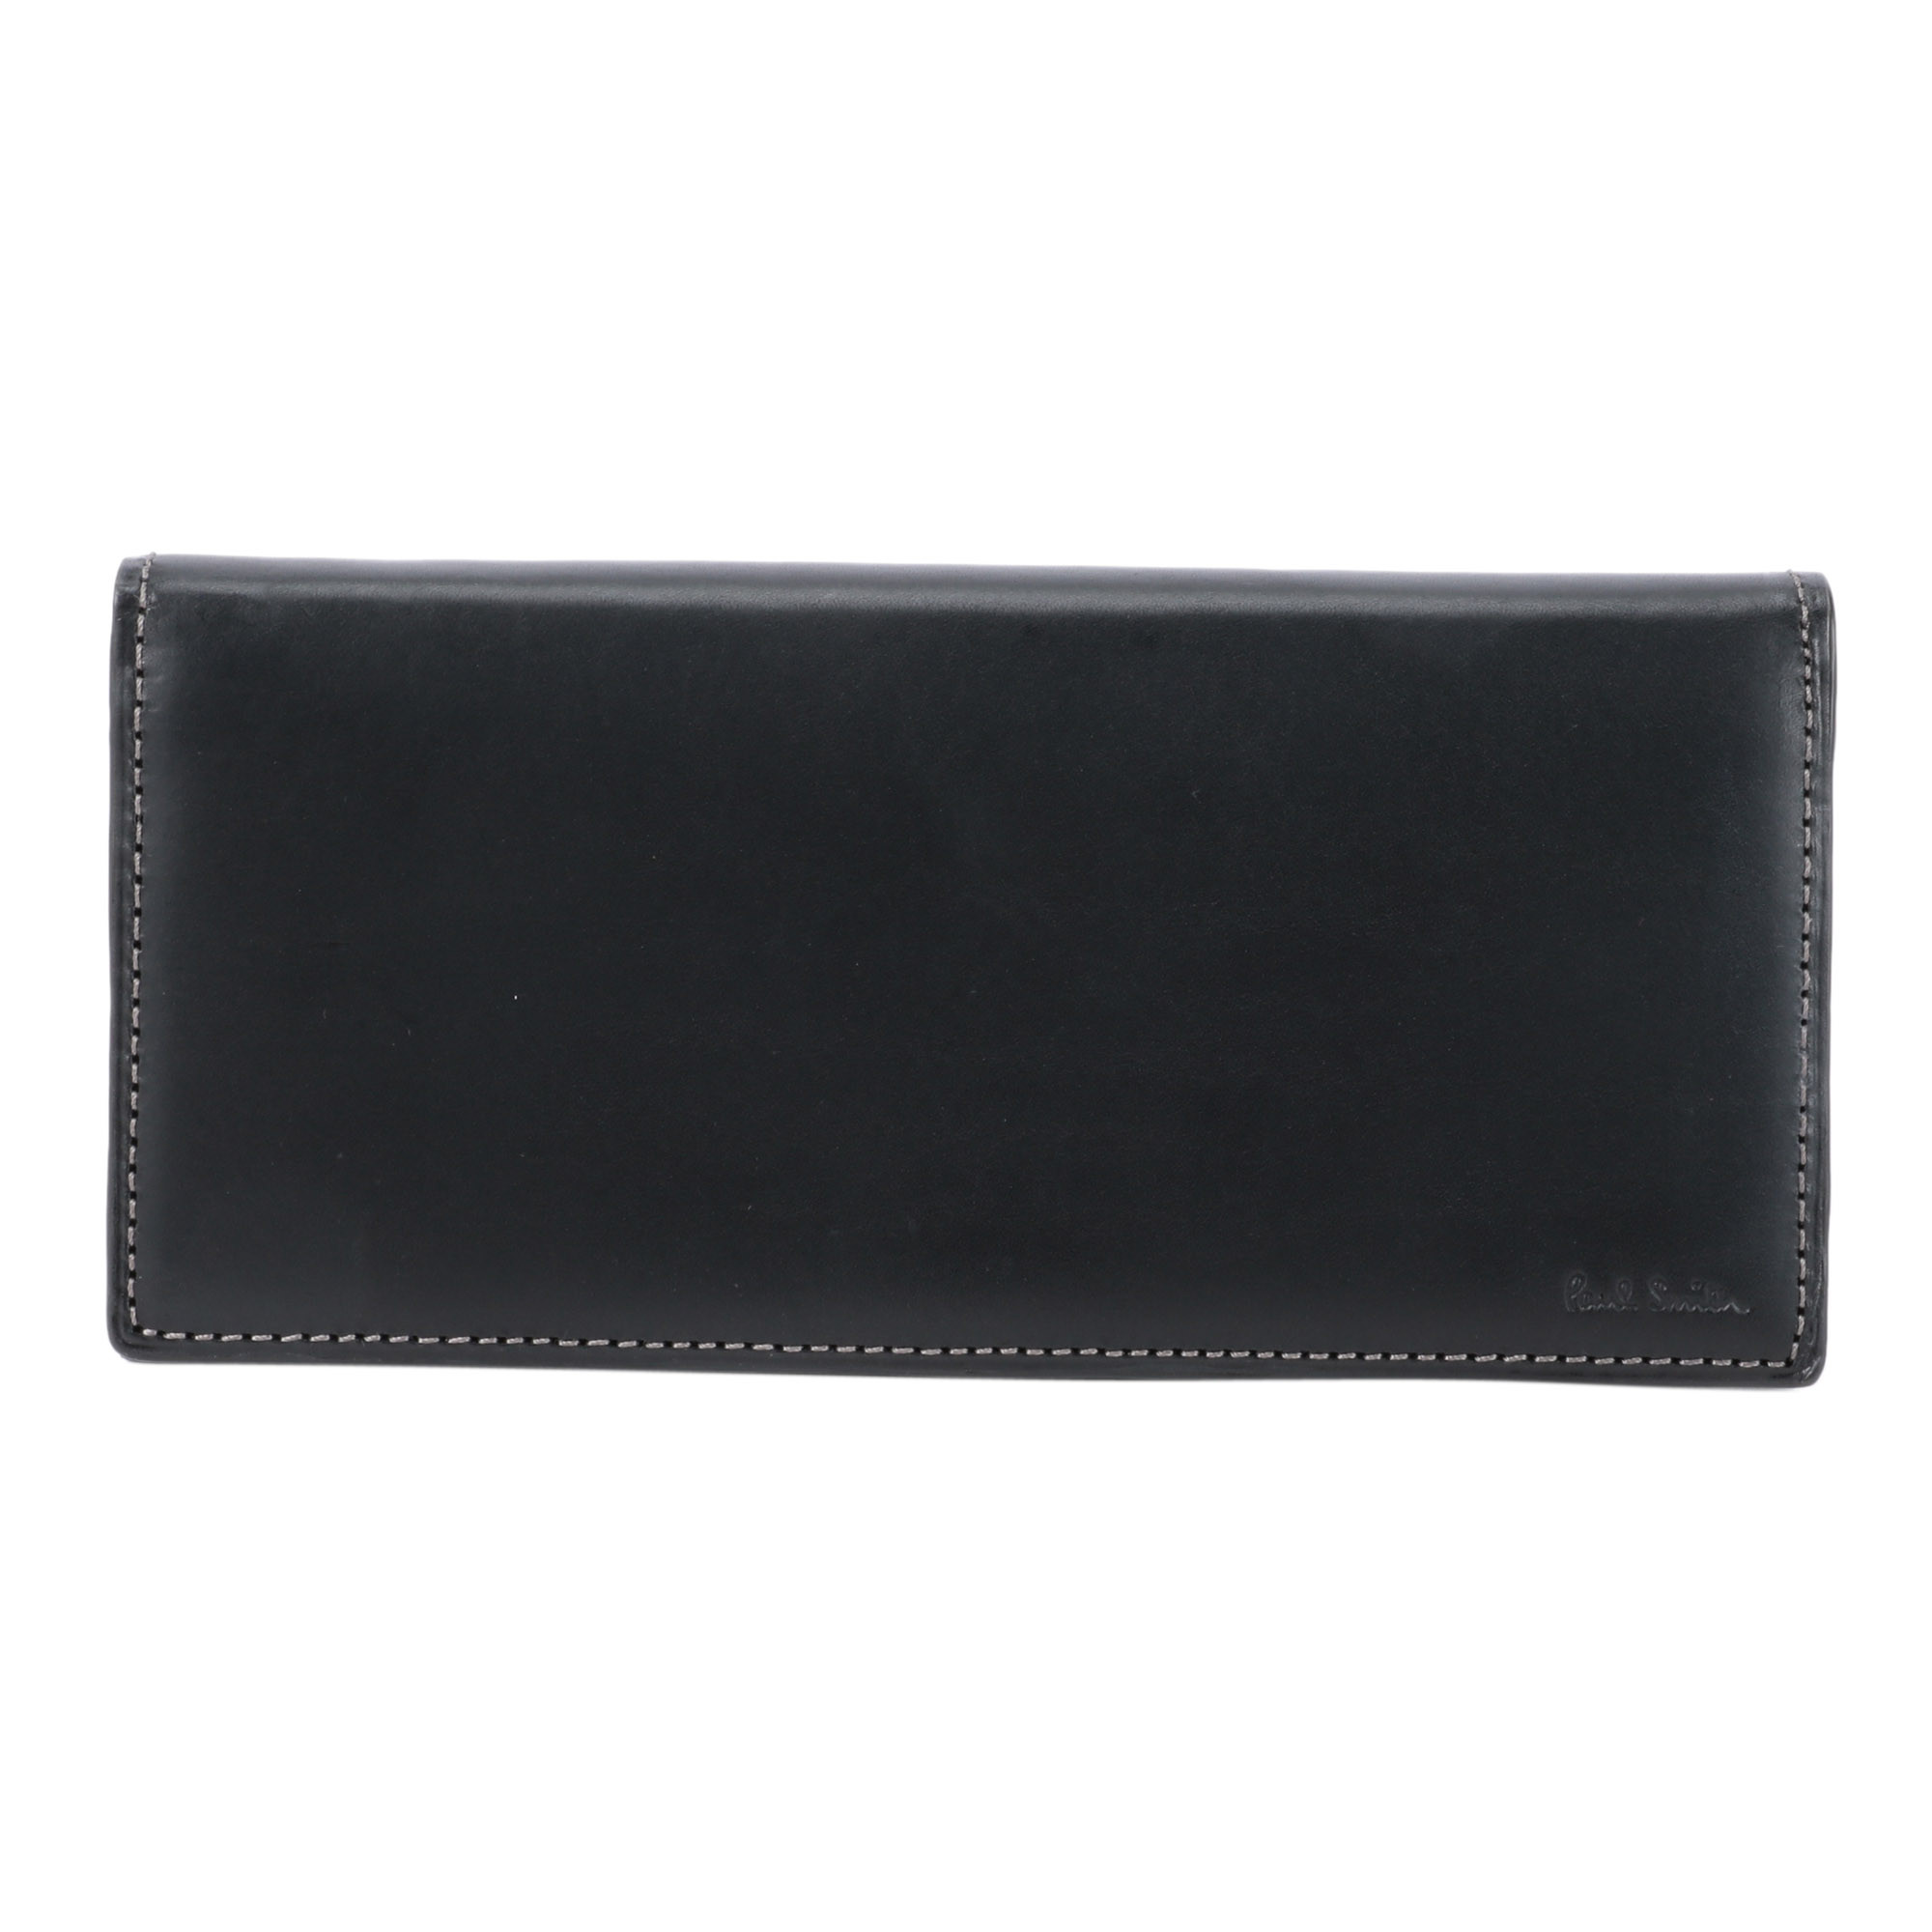 OLD LEATHER LONG WALLET